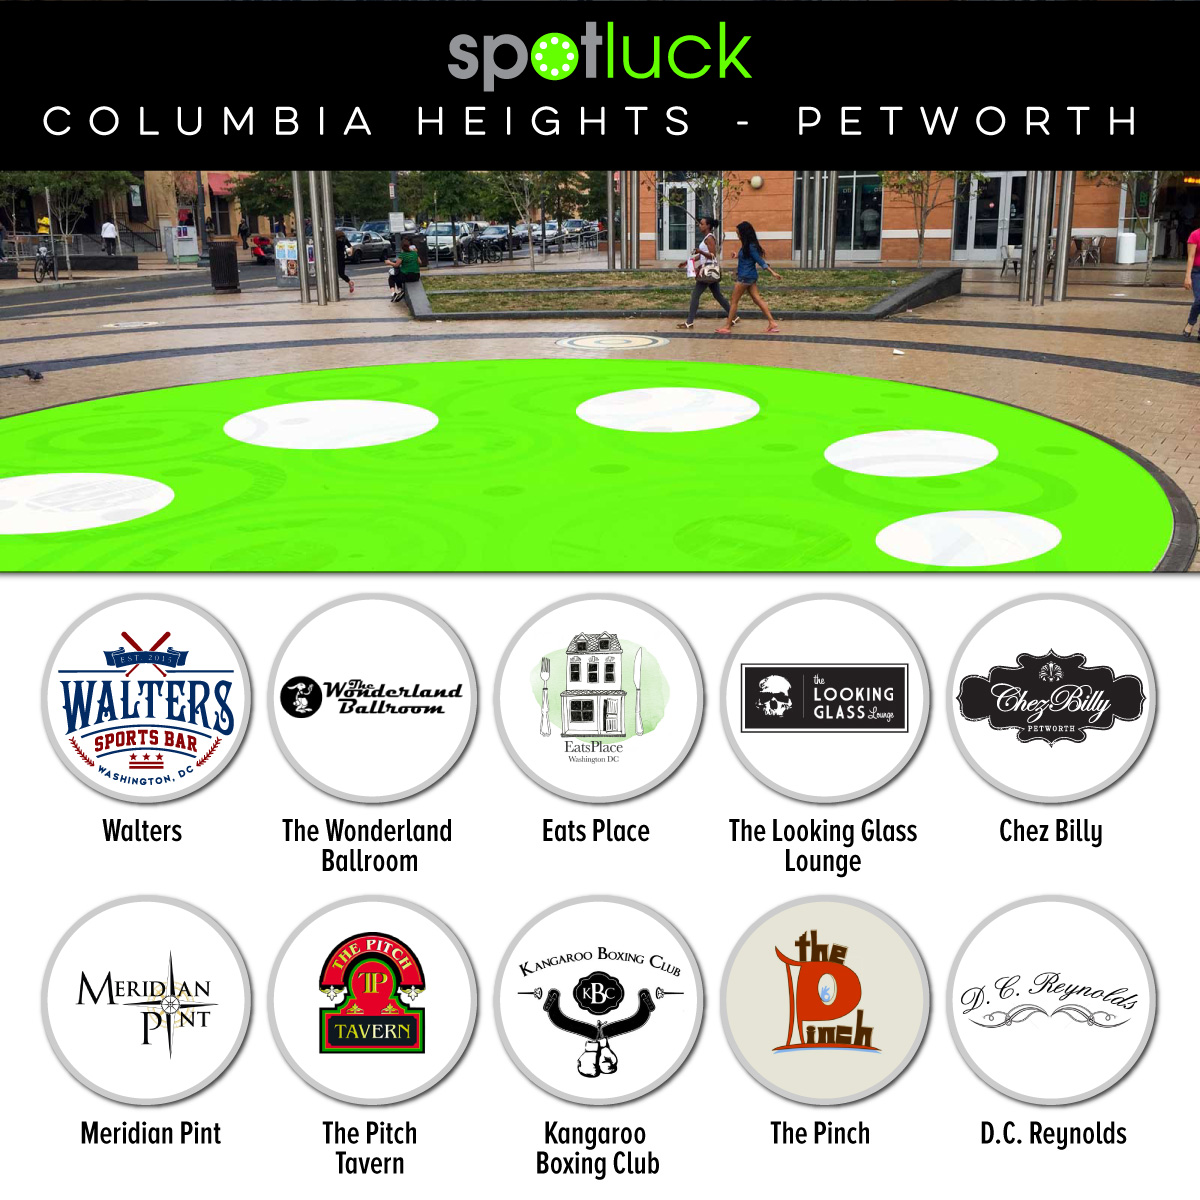 columbia-heights-petworth-spotluck-launch